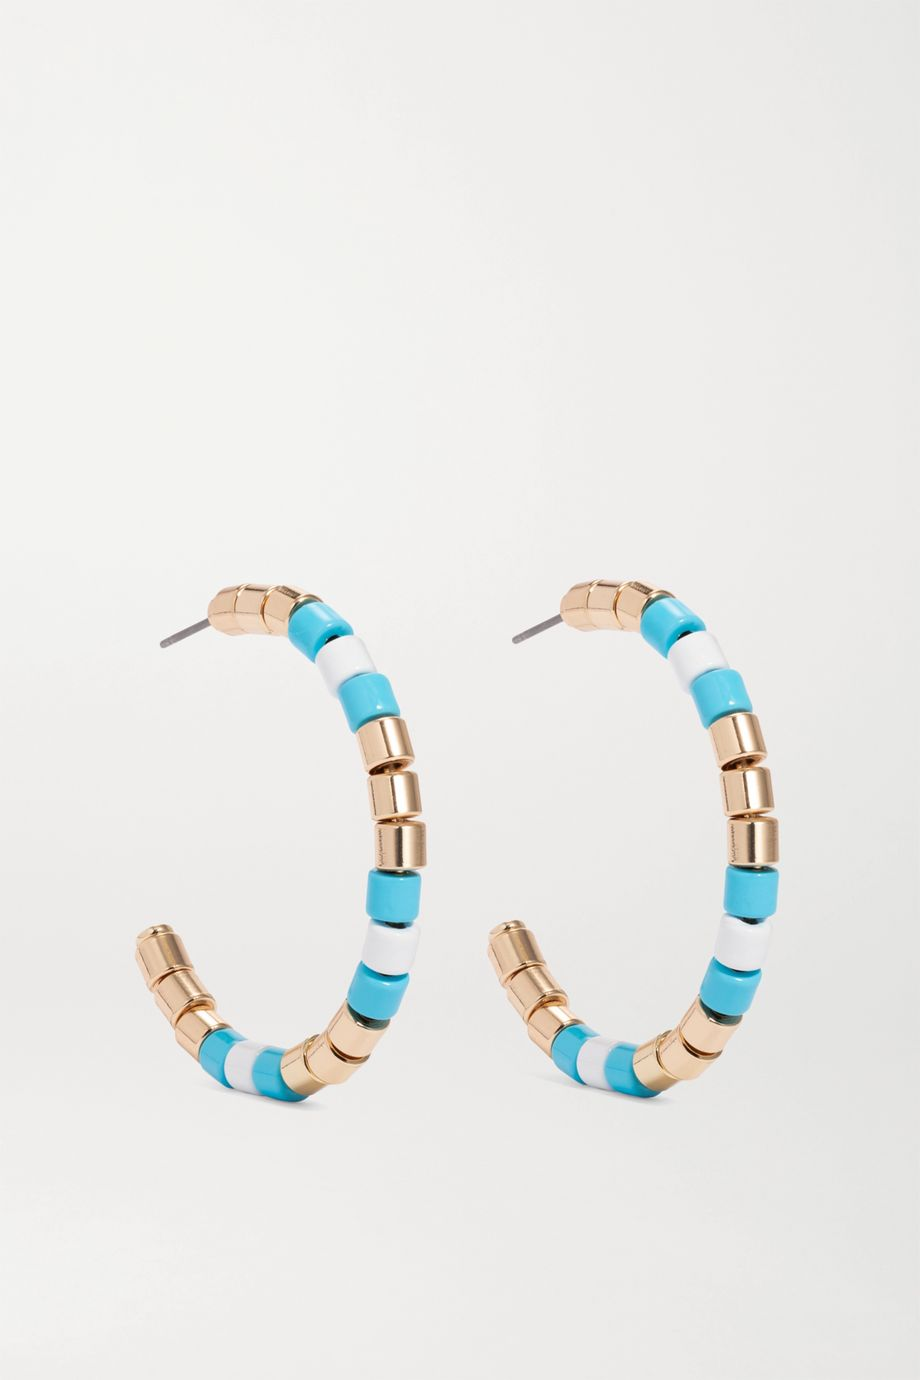 Roxanne Assoulin Poolside enamel and gold-tone hoop earrings